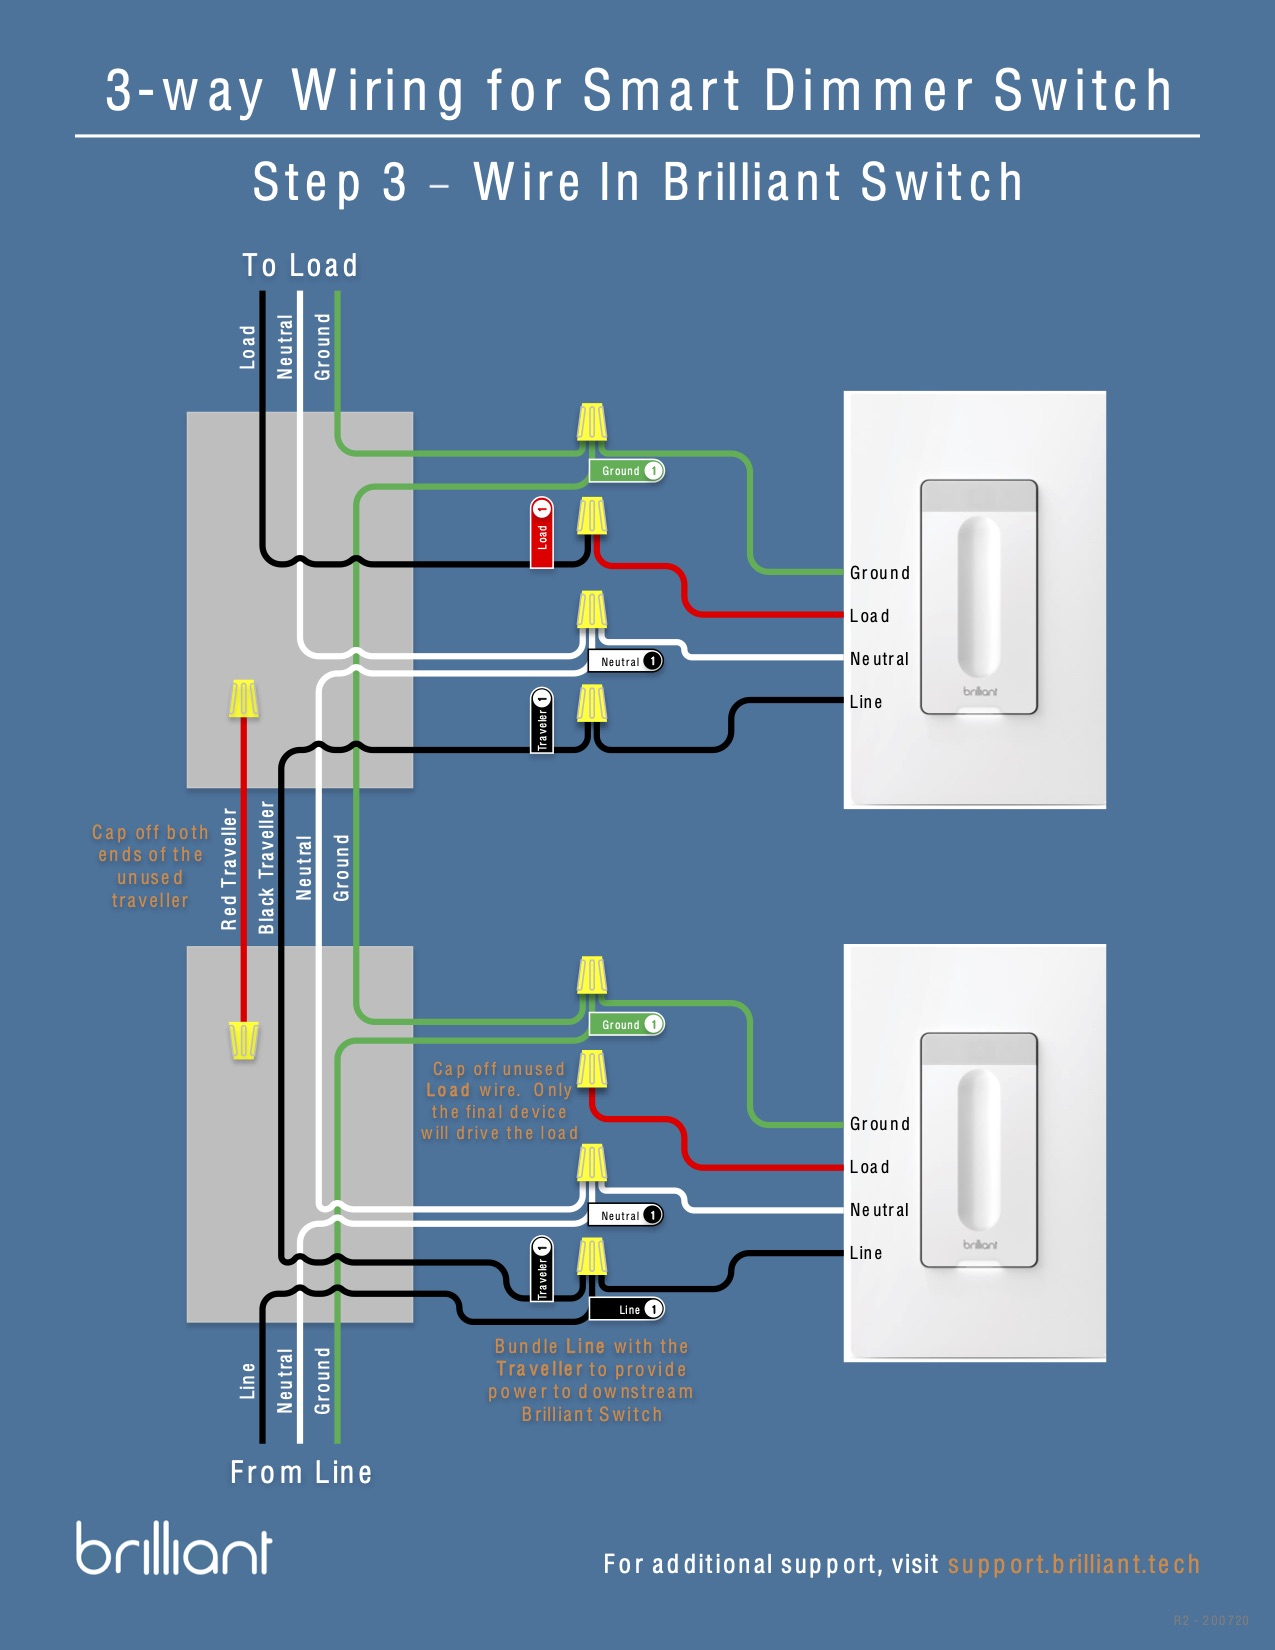 Wiring Diagram Double Switch Wiring : wiring, diagram, double, switch, Installing, Multi-way, Brilliant, Smart, Dimmer, Switch, Setup, Support